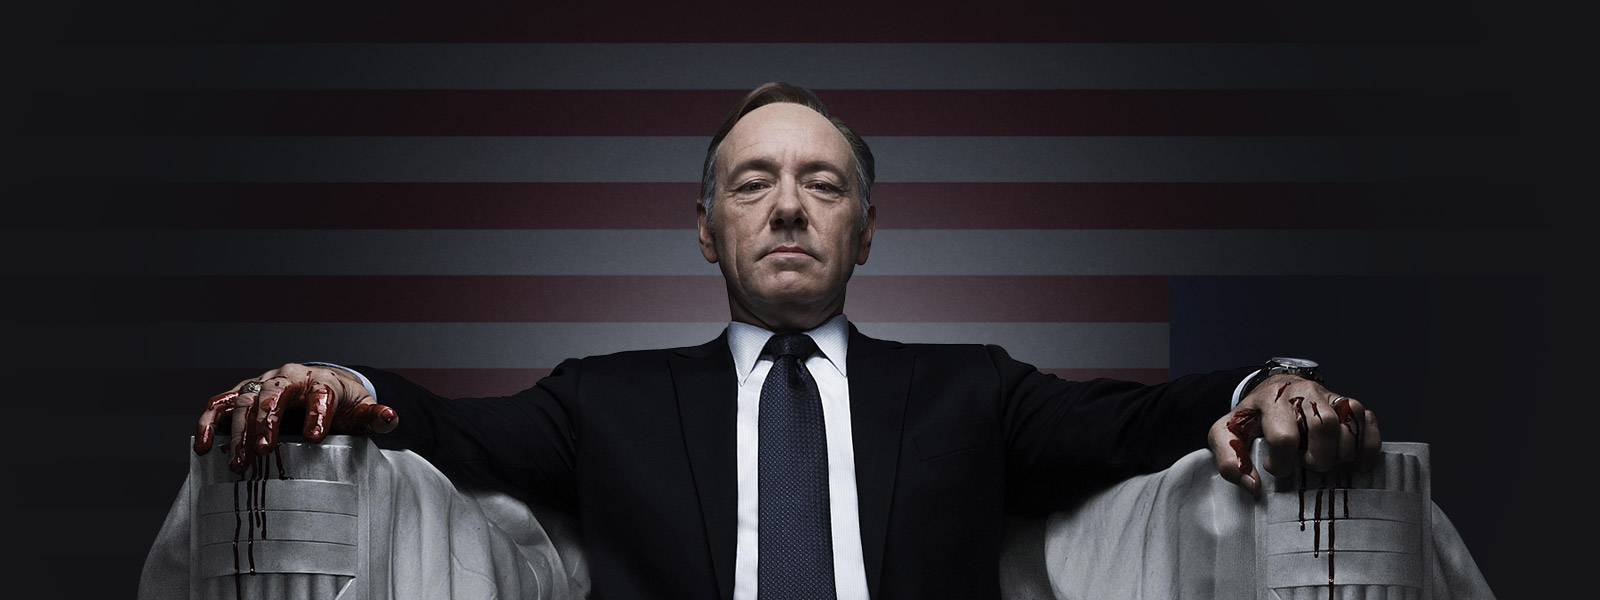 House of Cards | Divulgado primeiro trailer da nova temporada